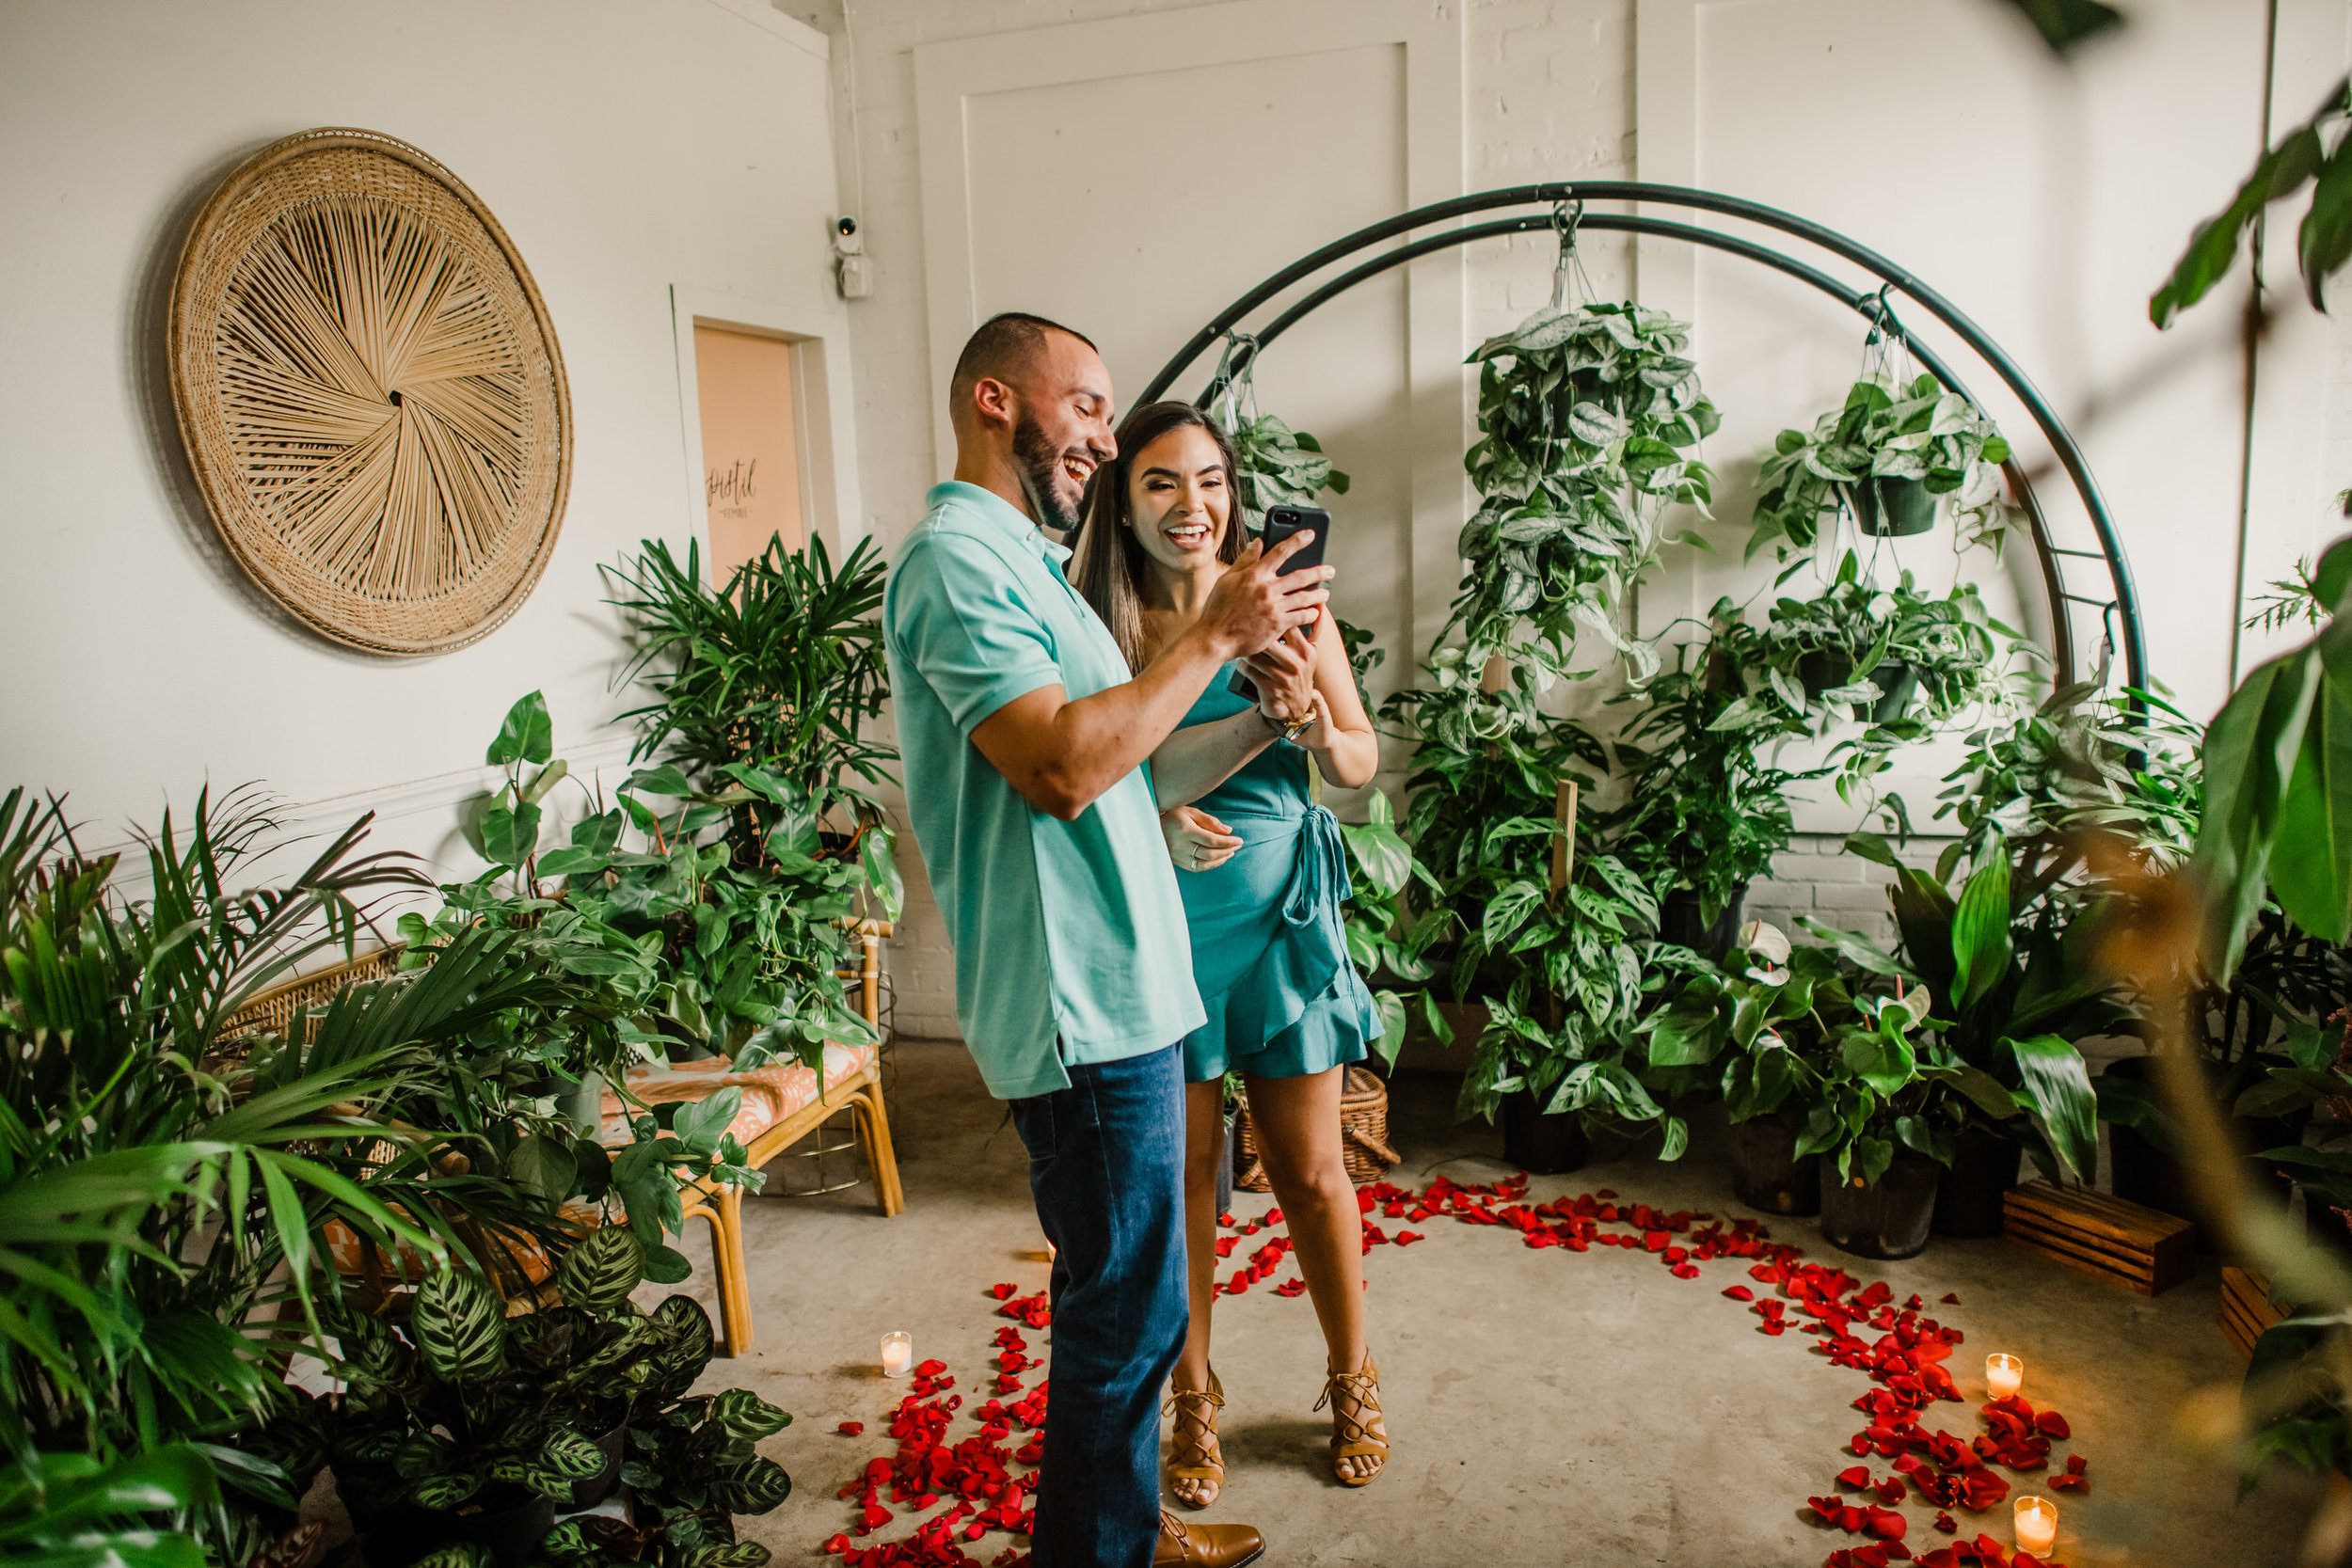 Valeria-Jonathan-Fancy-Free-Nursery-Tampa-Florida-Proposal-92.jpg